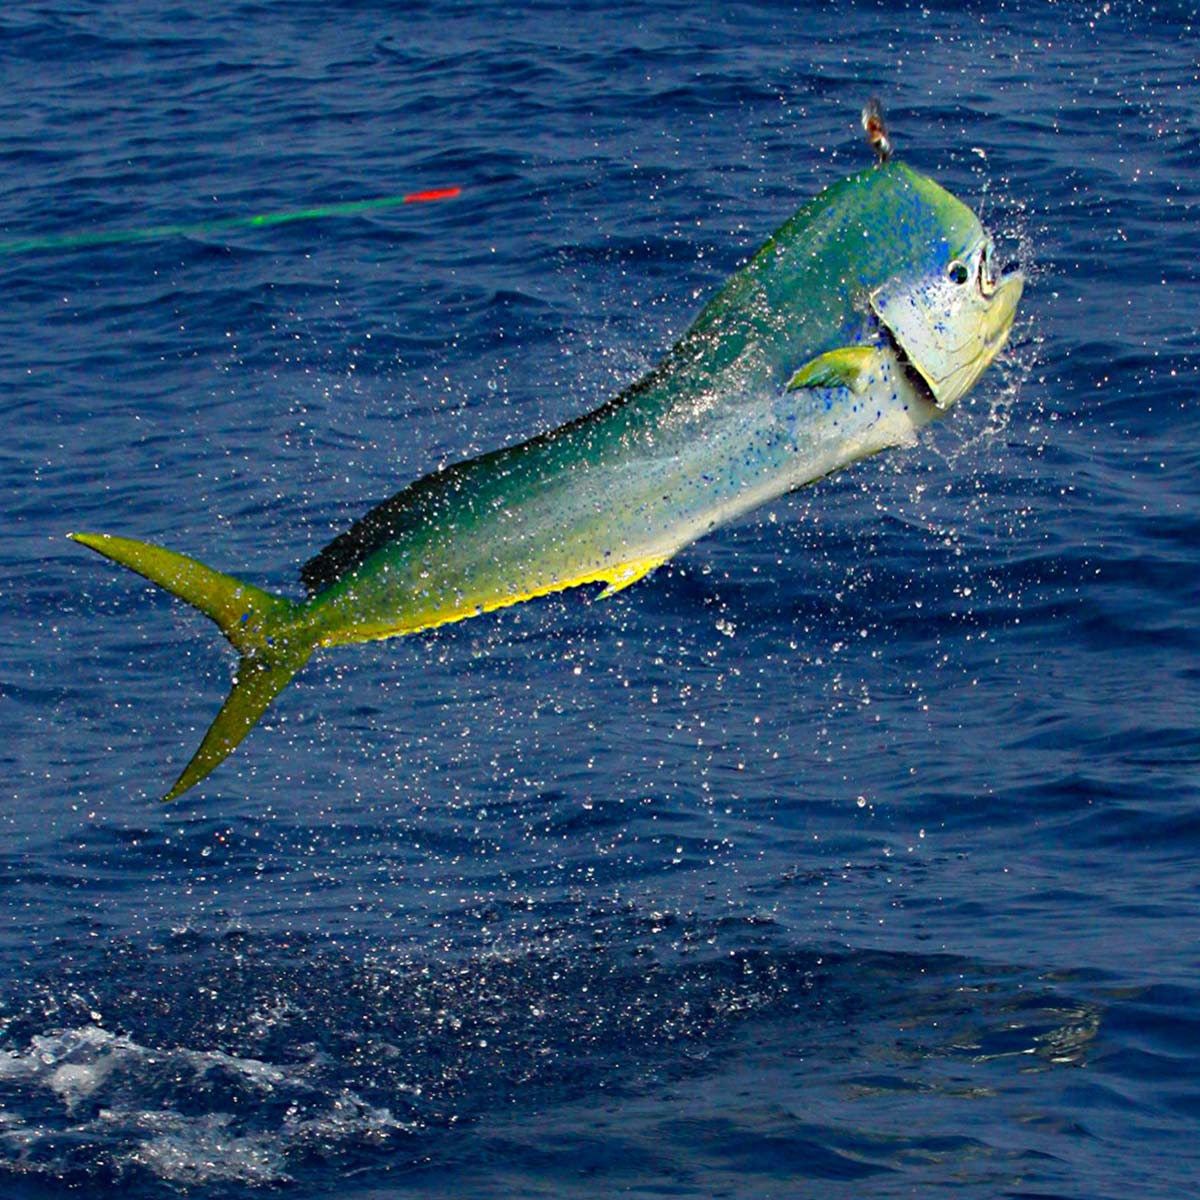 Cabo Sport Fishing: Beginner To Expert Anglers